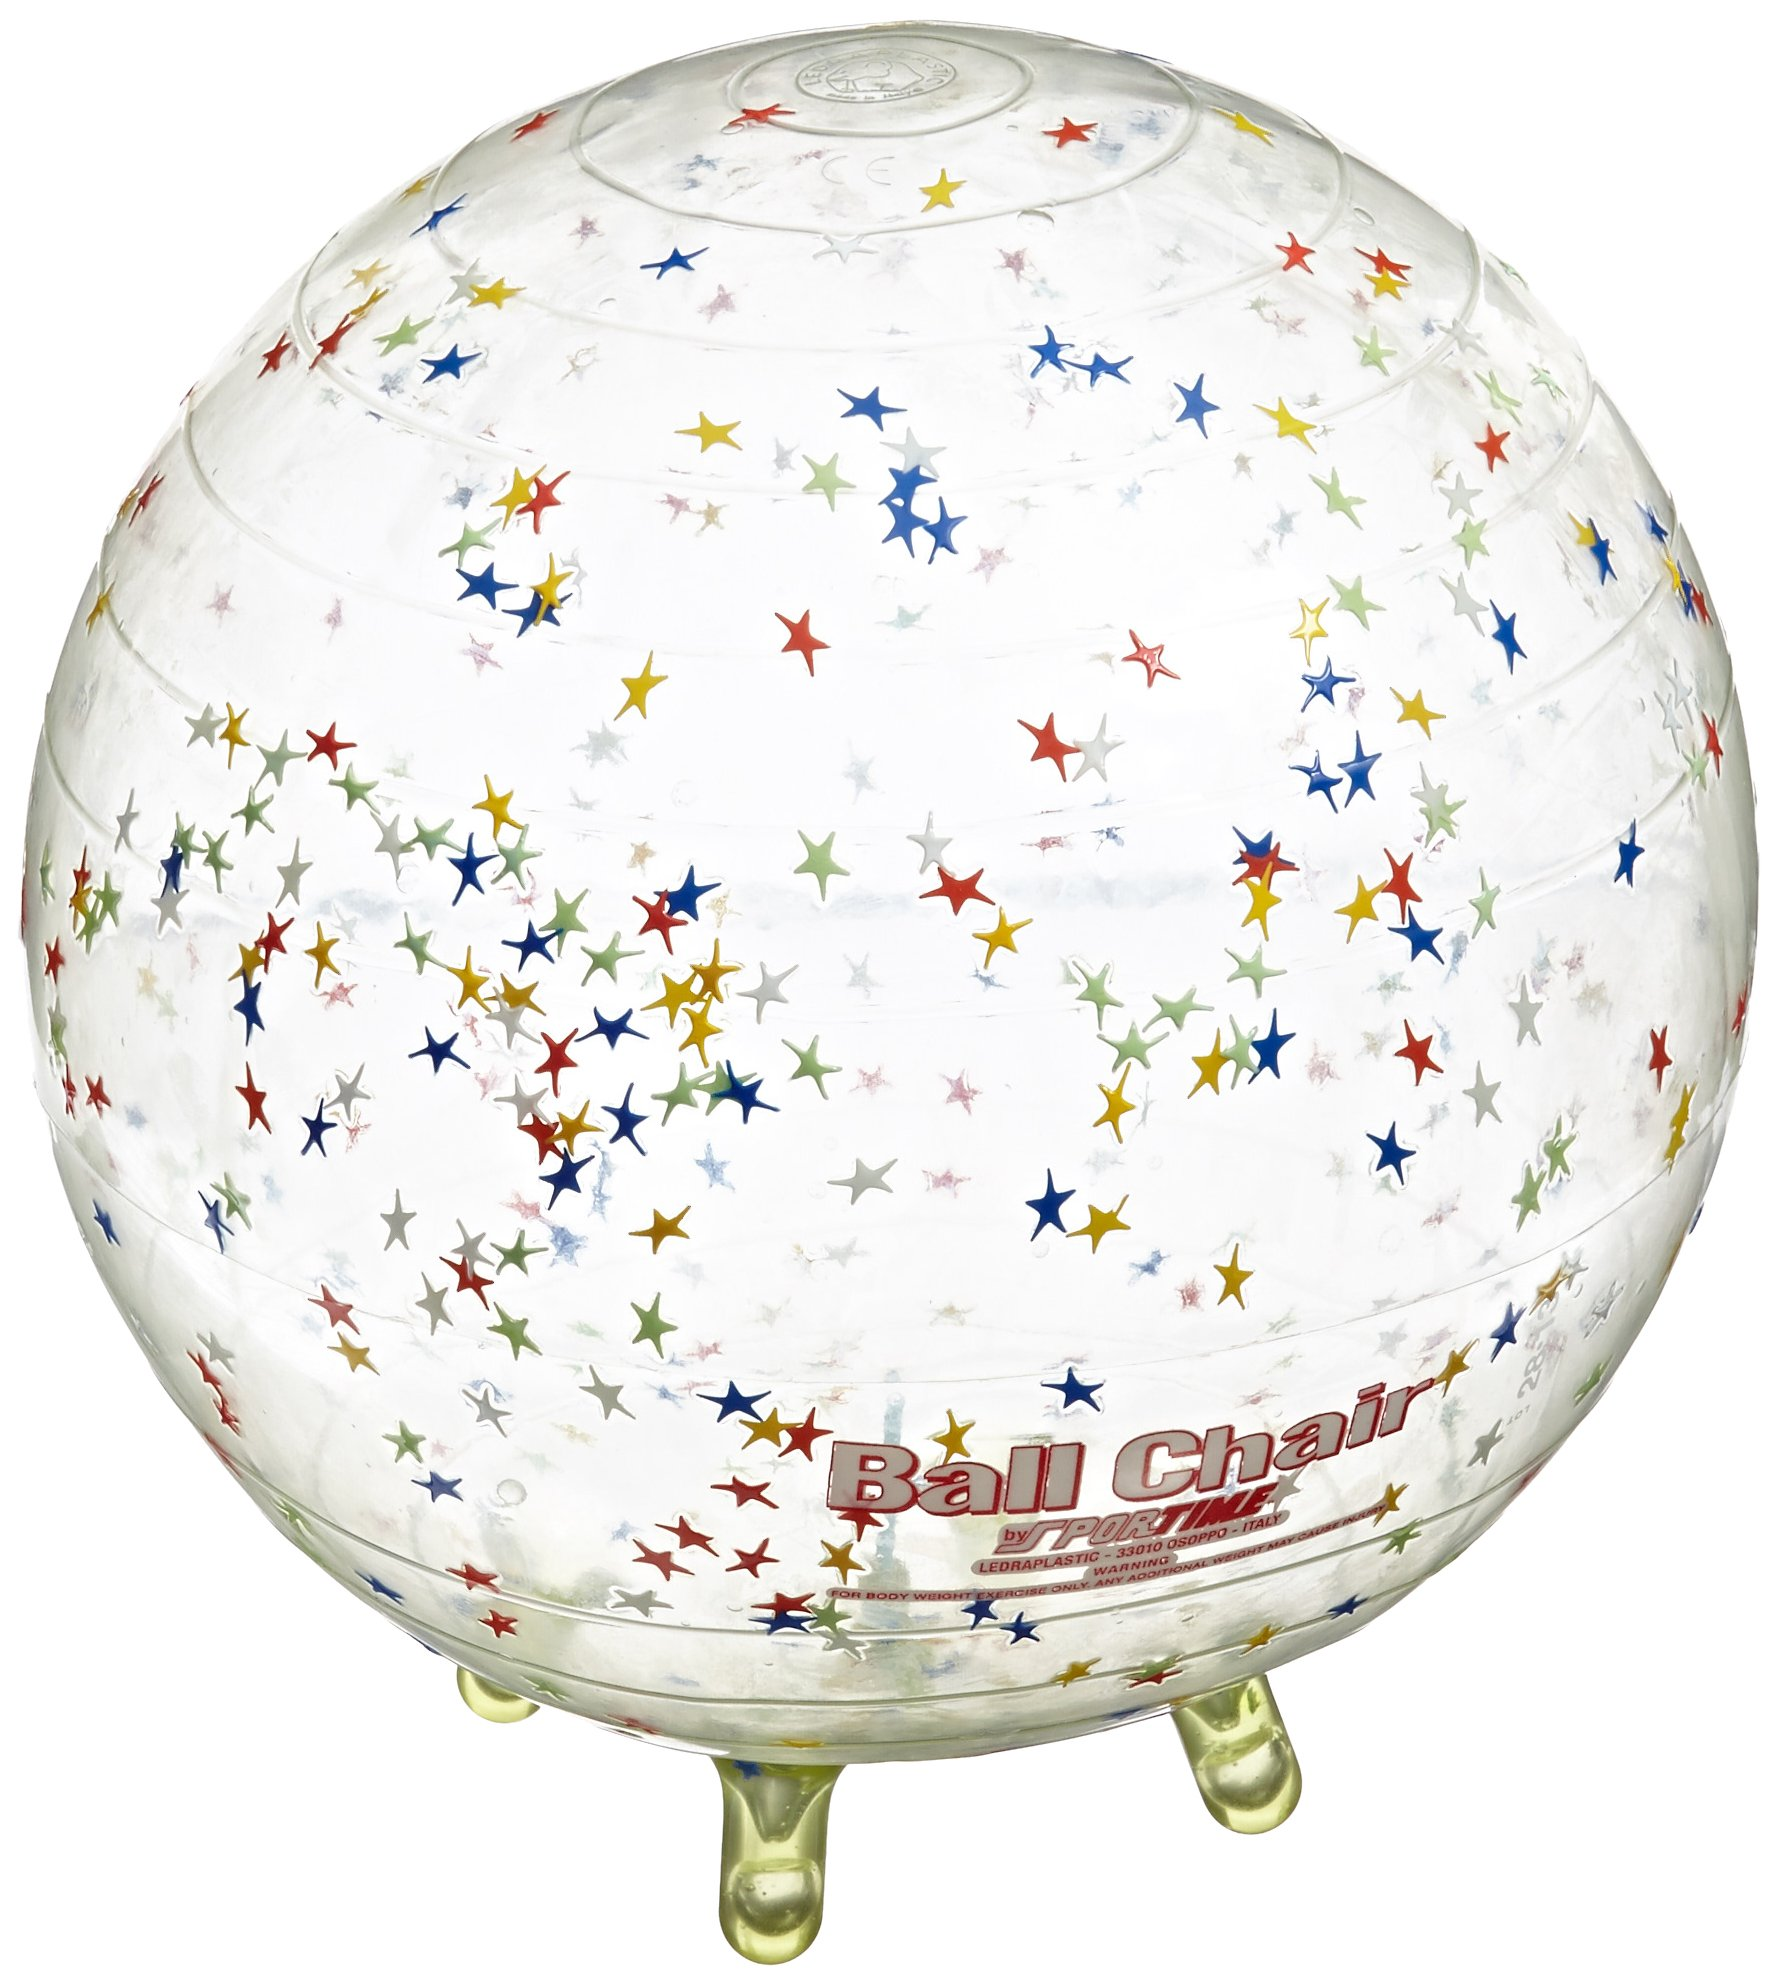 Gymnic Sit'N'Gym Therapy Ball with Built in Legs, 13-1/2 Inches, Clear with Stars